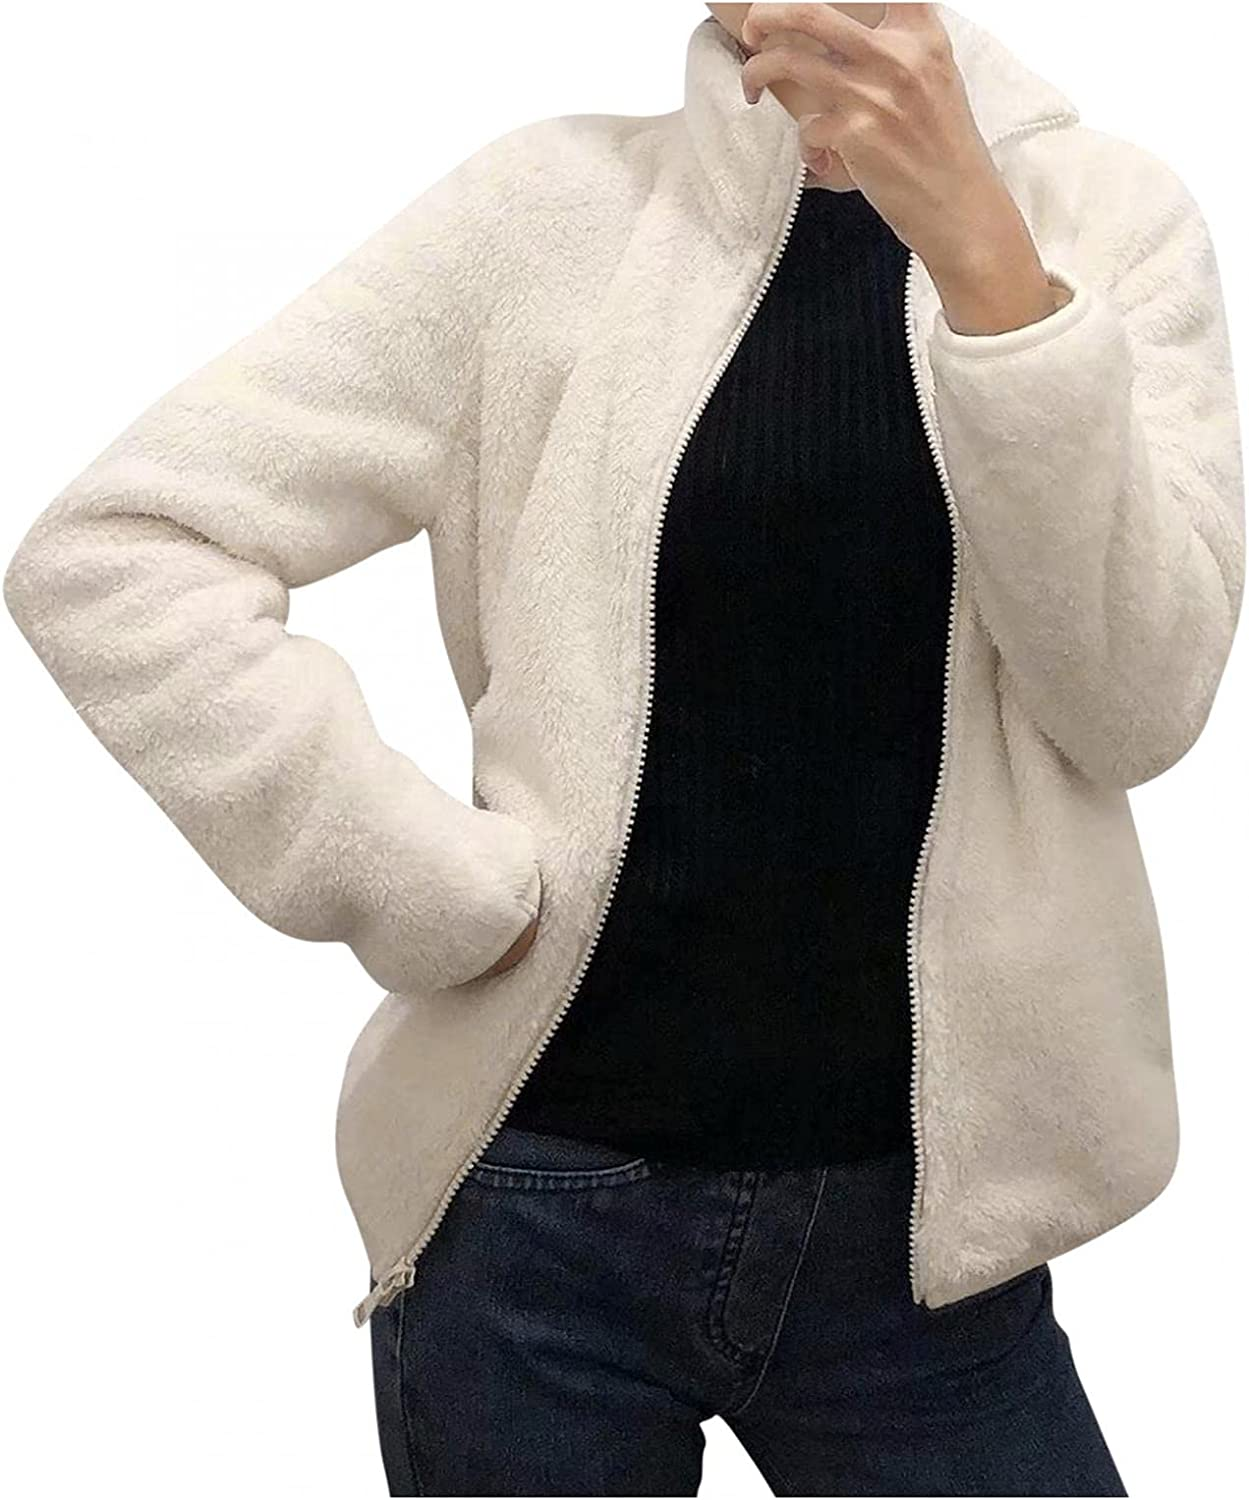 Changeshopping Womens Winter Pluff Coats Cozy Soft Long Sleeve Warm Jacket with Pockets